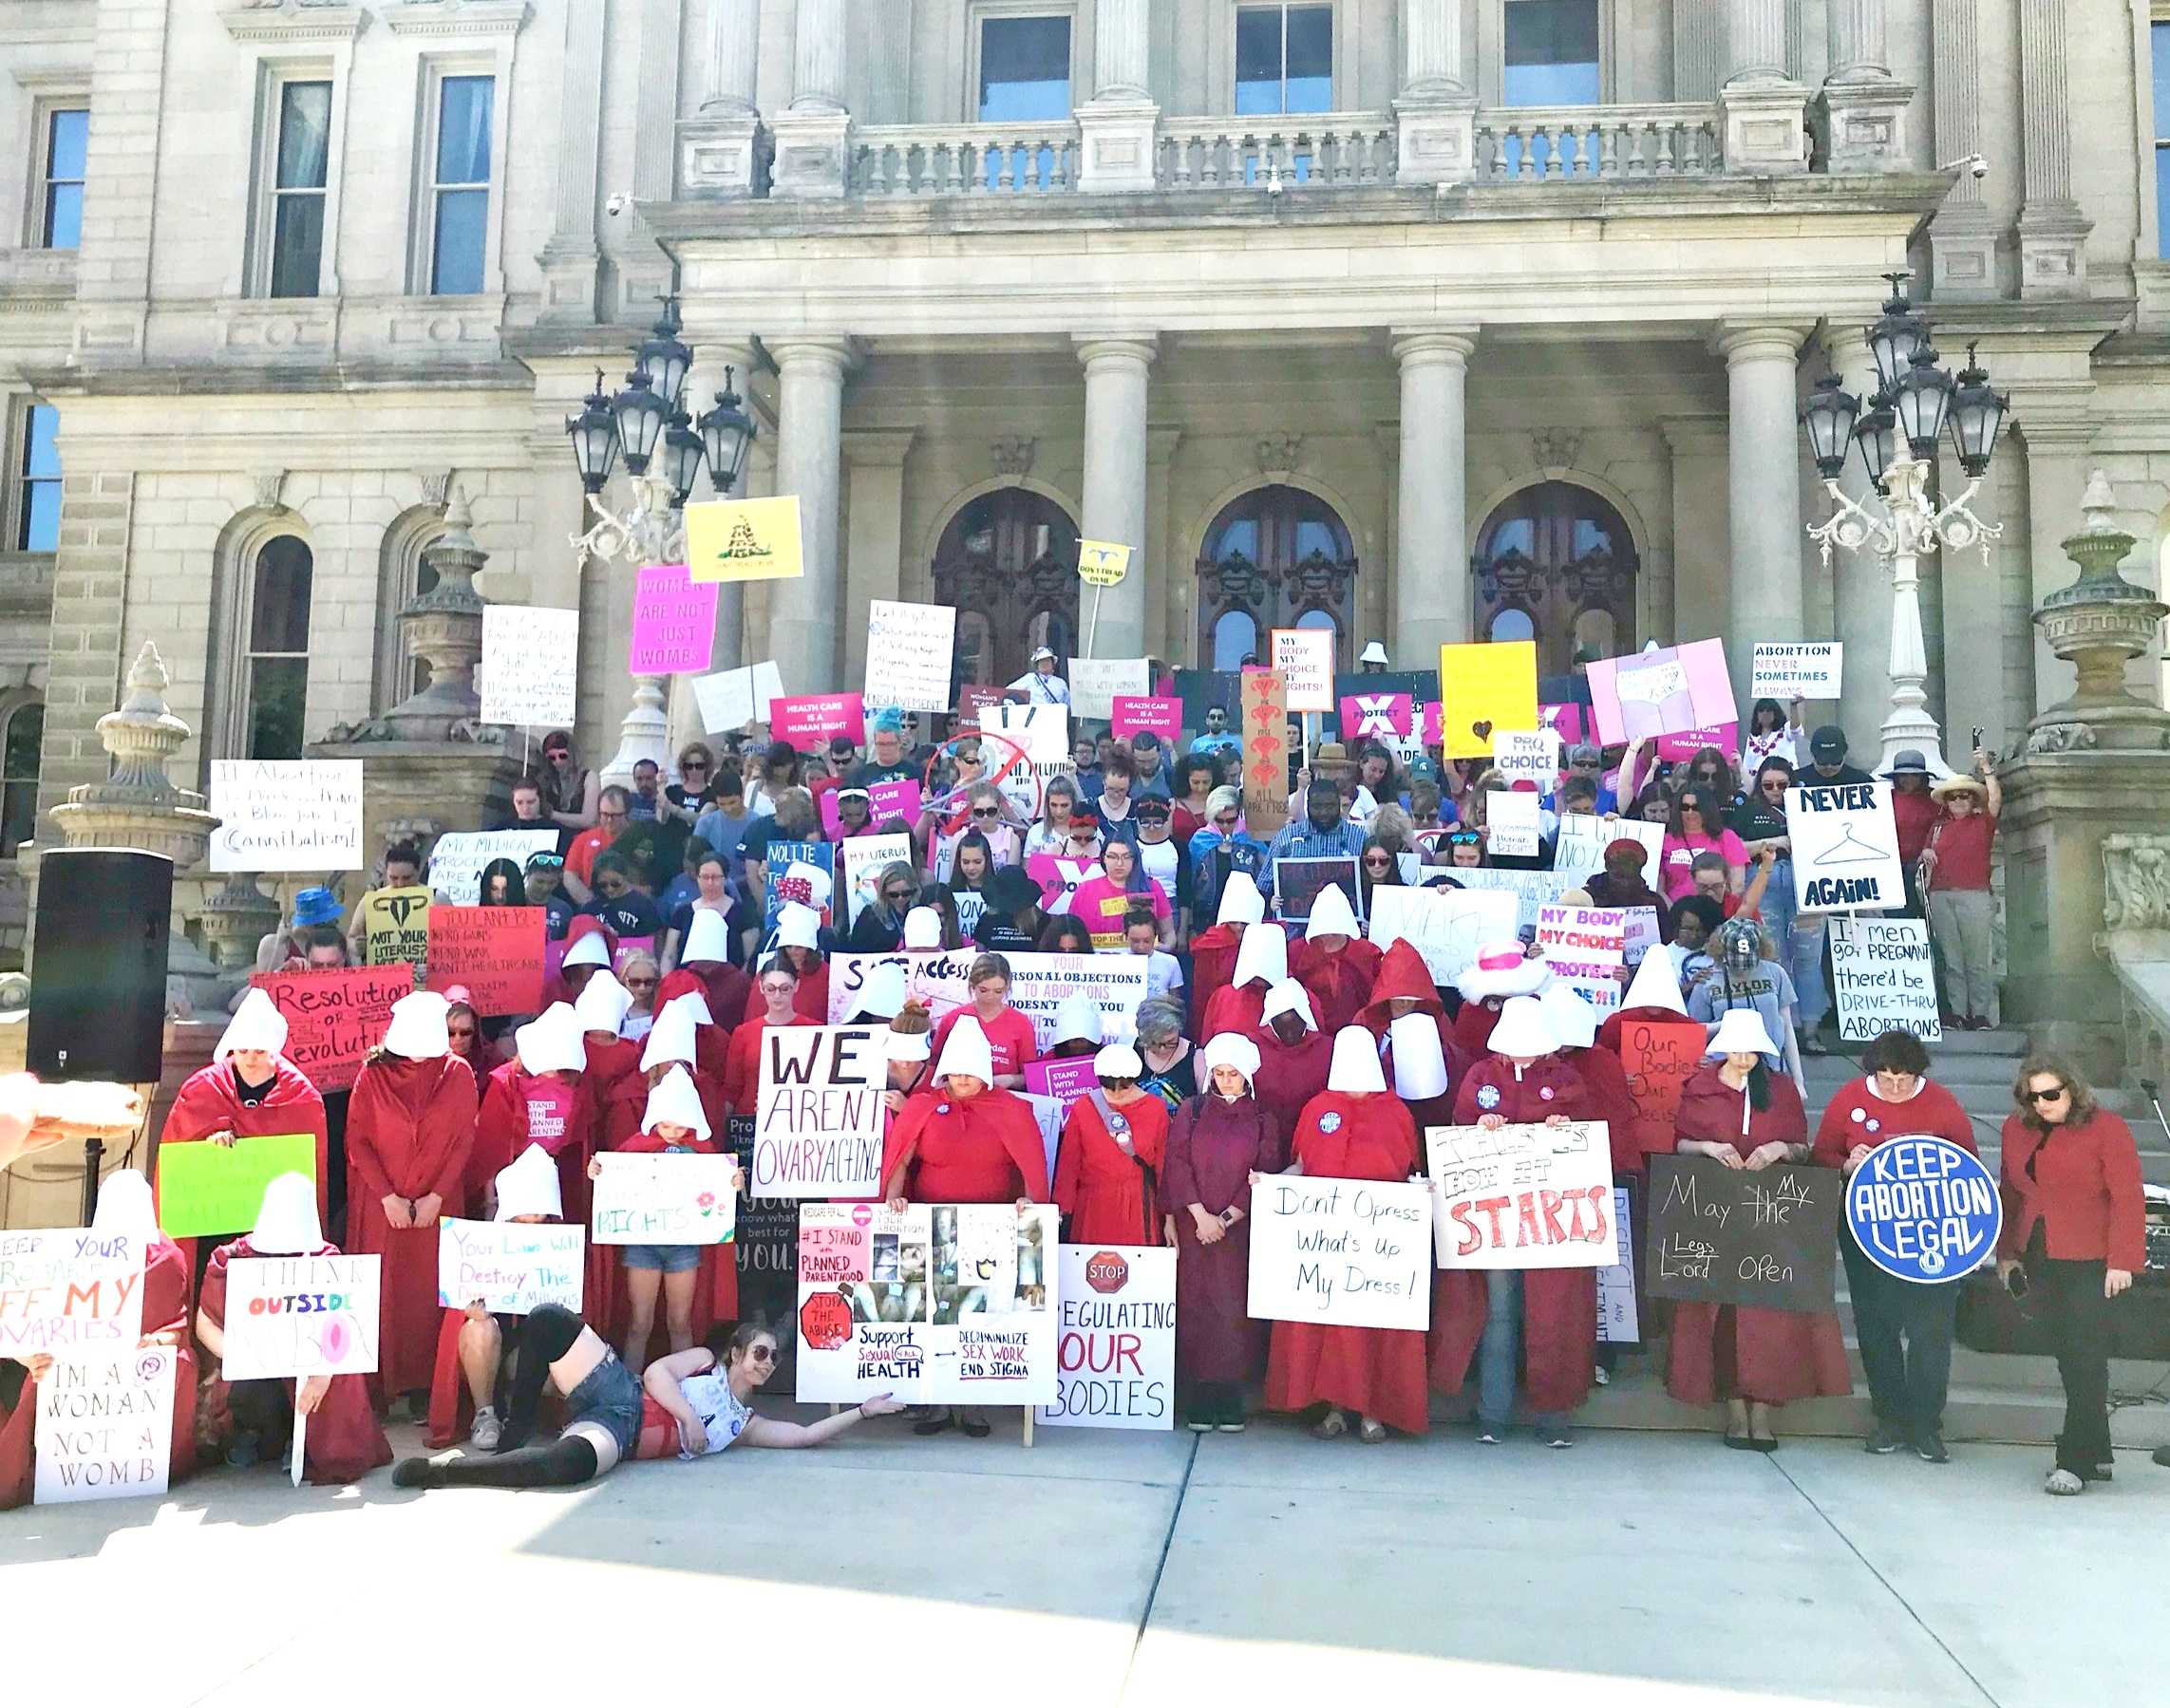 Handmaid's Tale Rally Against the Abortion Ban. Lansing MI June 2019. Women's reporoductive rights were the focus and so many supporters were in true Handmaids garb to hear the impressive lineup of speakers. Fems for Change volunteers partnered with LWV members from Lansing to offer voter registration.